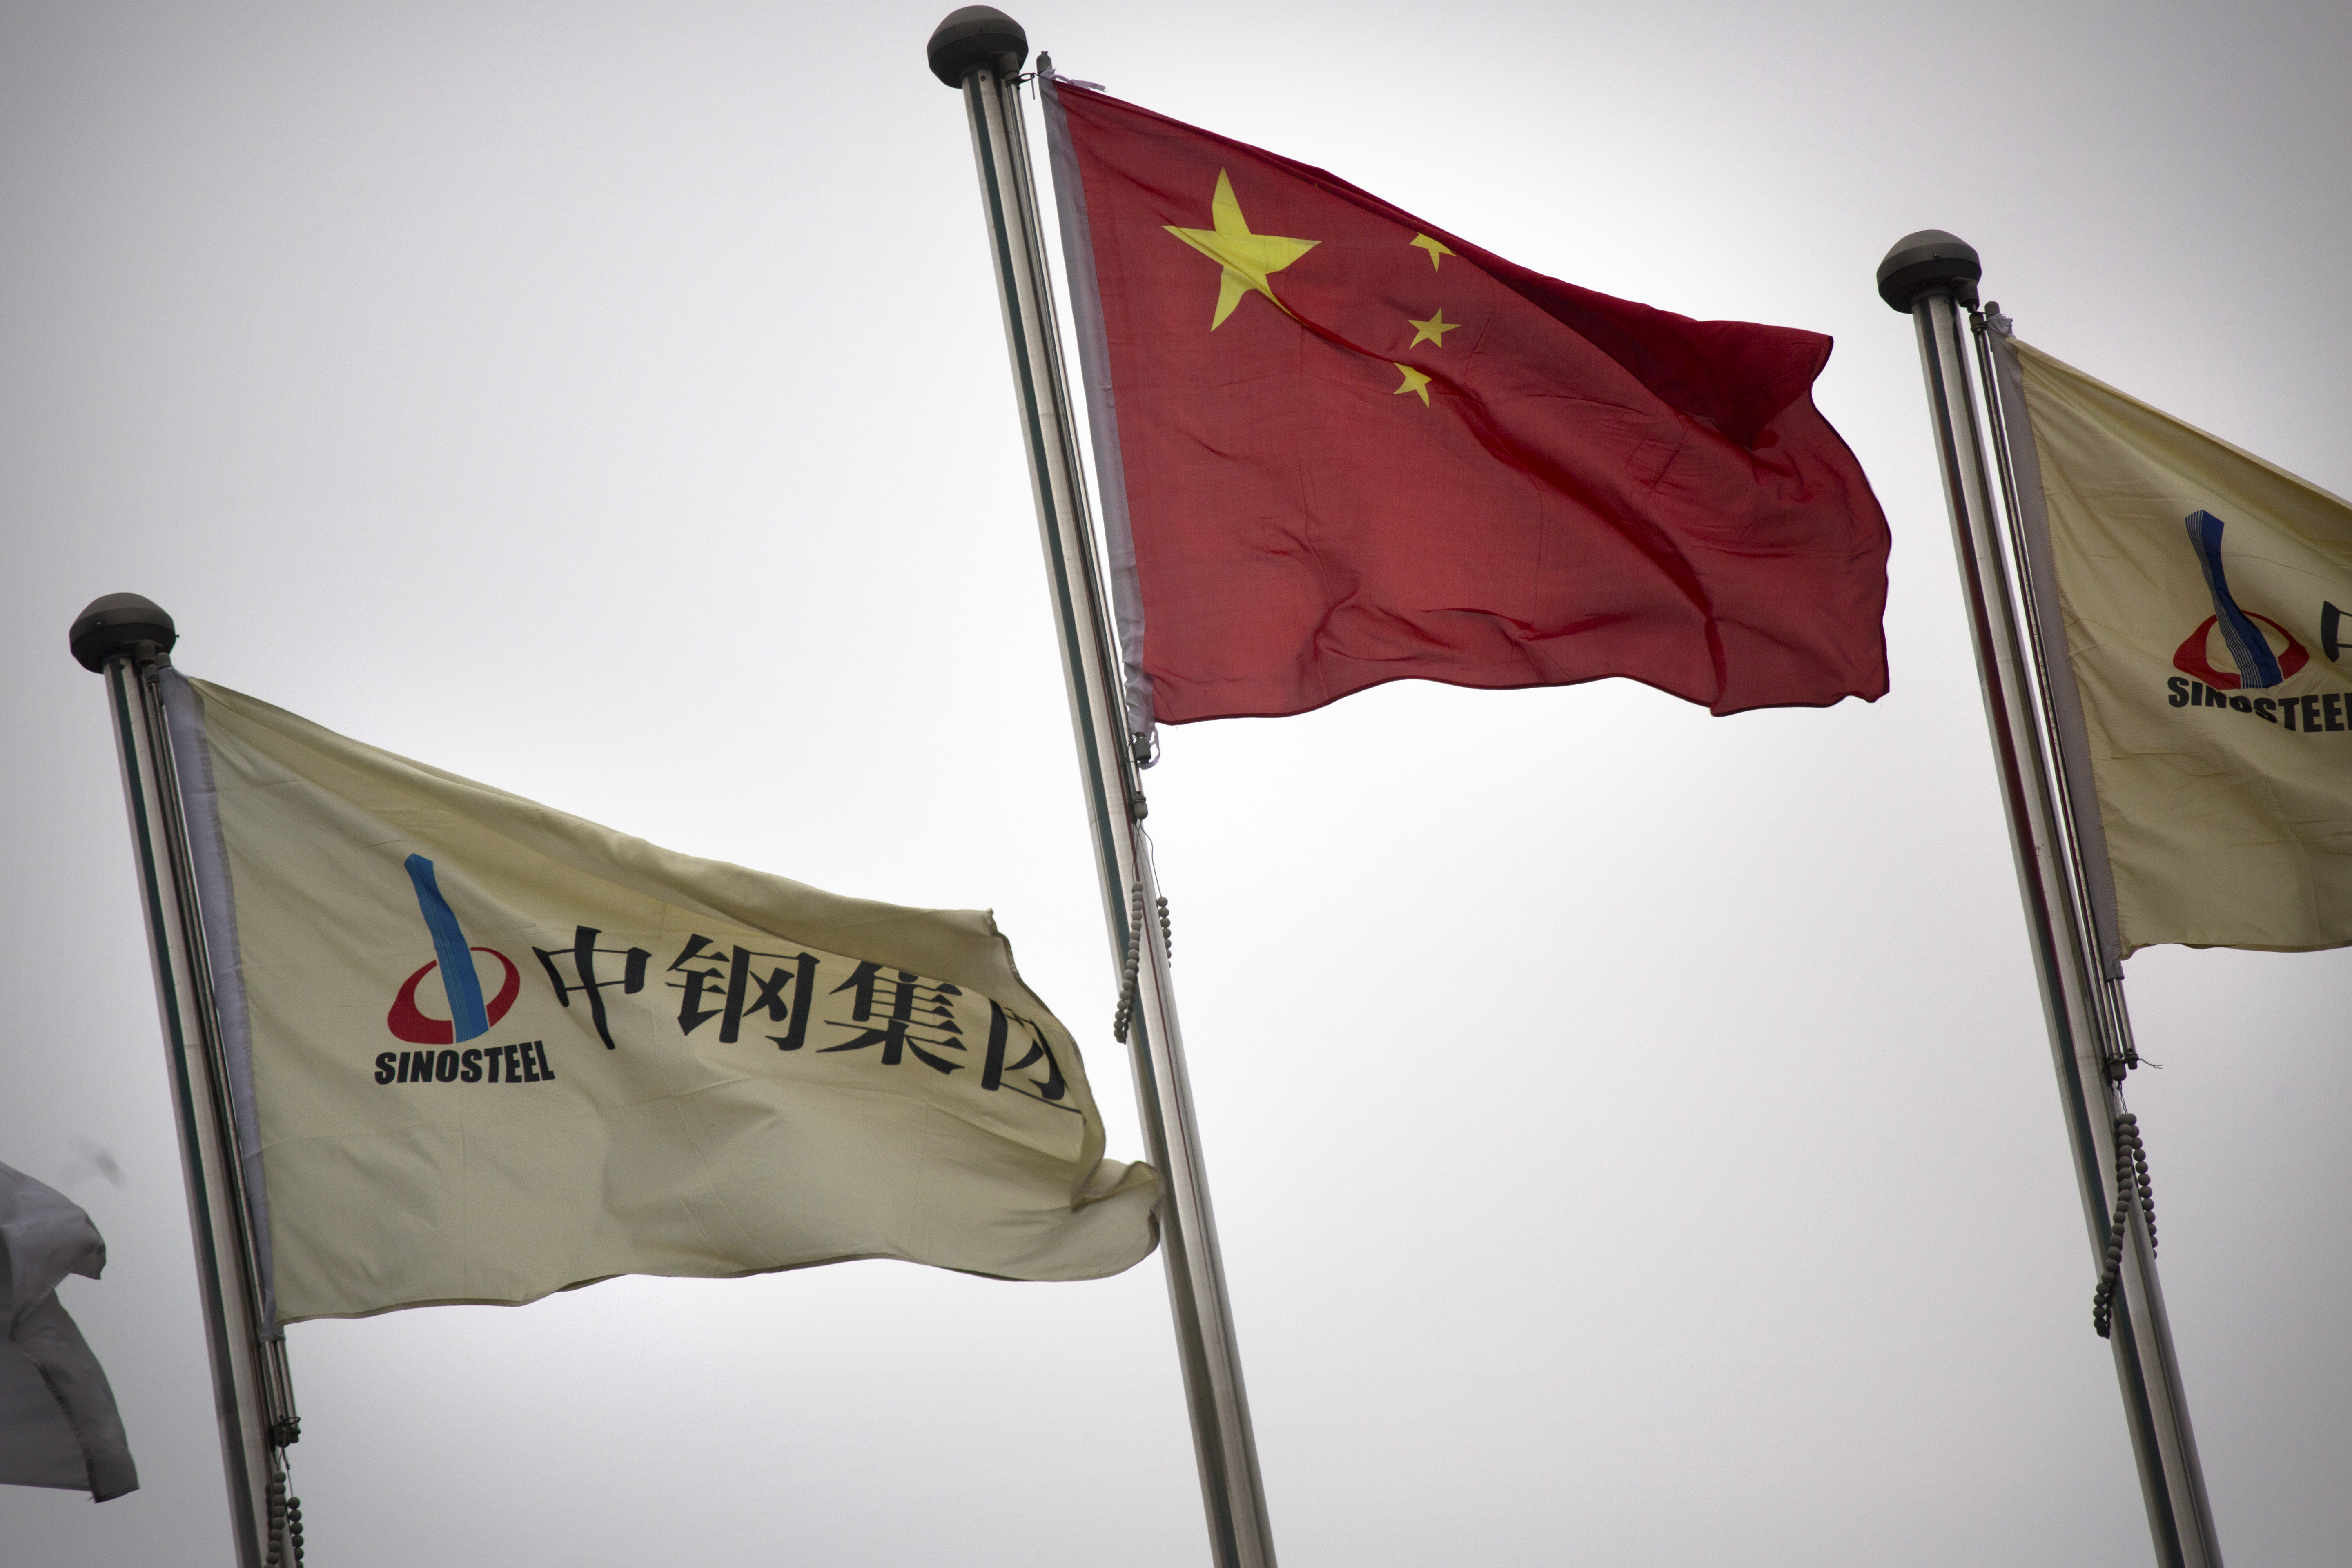 FILE - SinoSteel Corp. and Chinese flags fly outside of the company's headquarters in Beijing, China, Nov. 18, 2015.